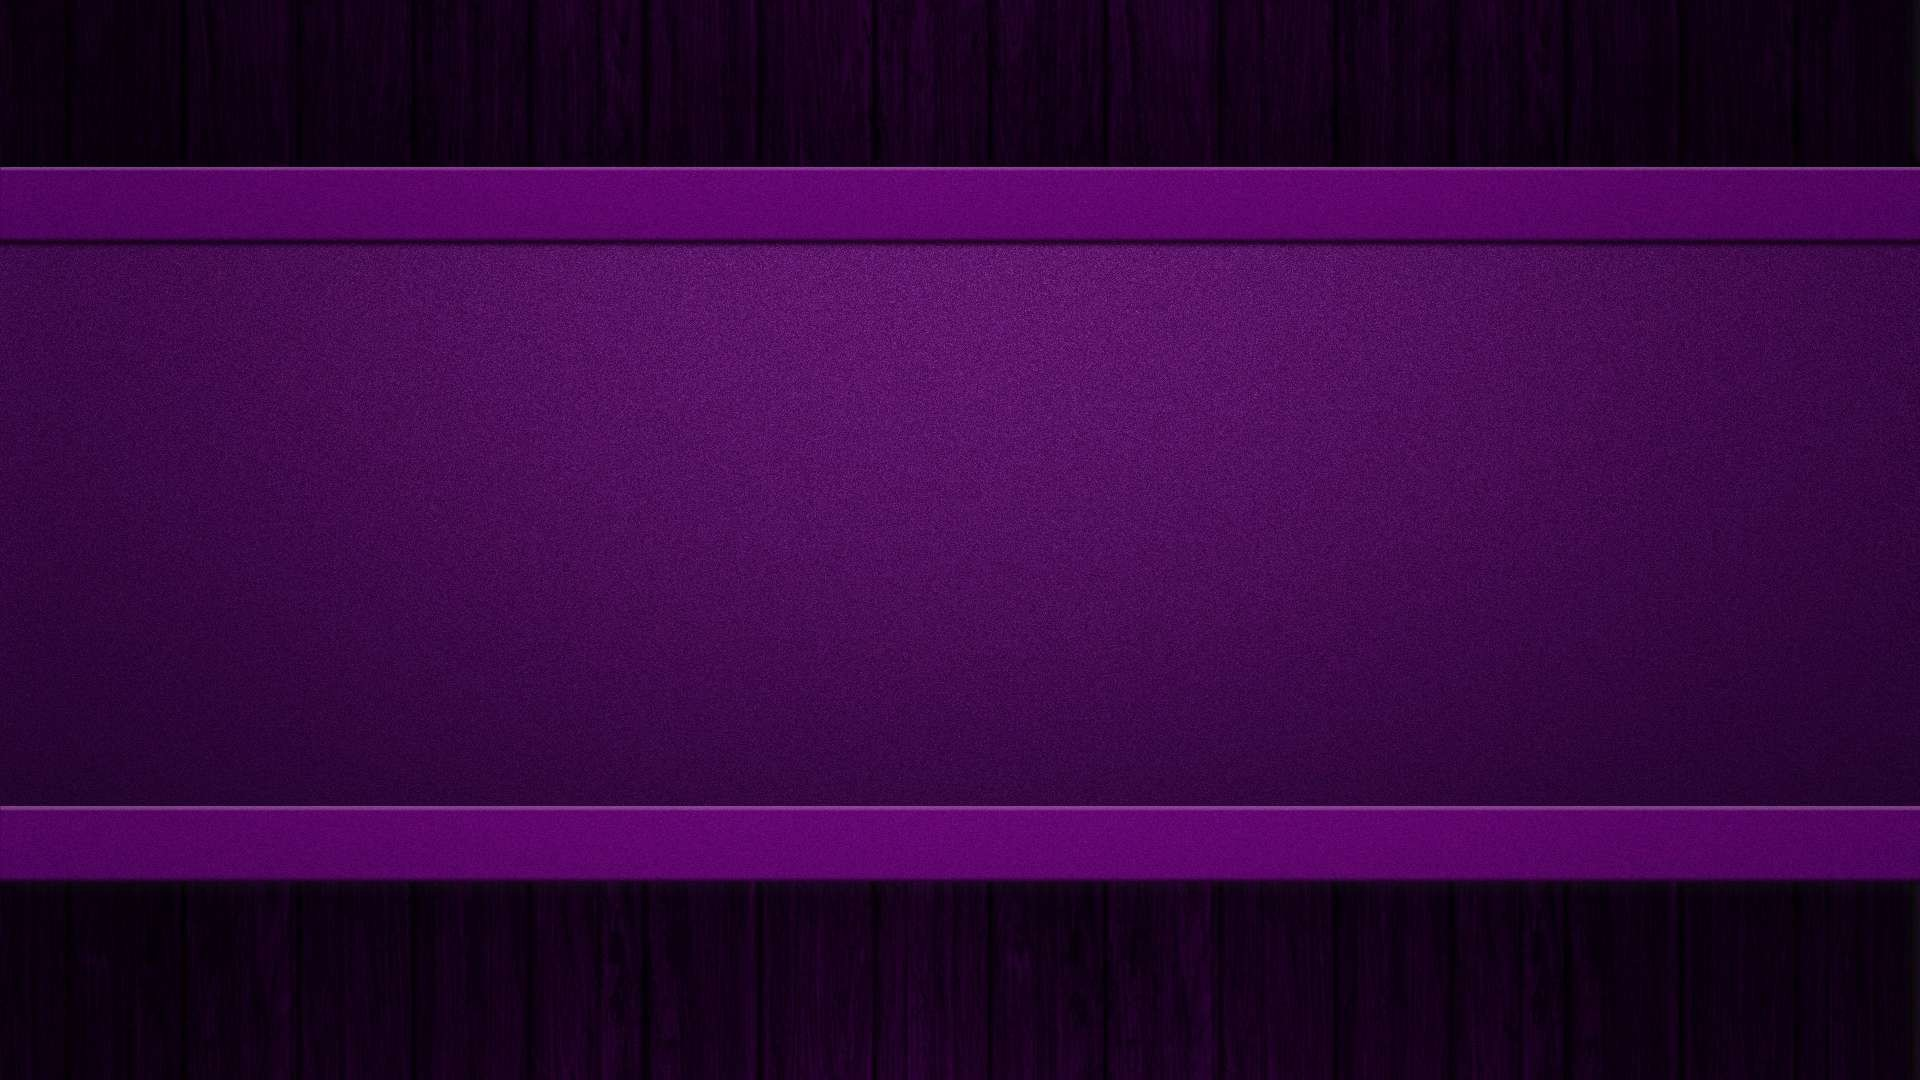 purple and gold wallpapers. Black Bedroom Furniture Sets. Home Design Ideas